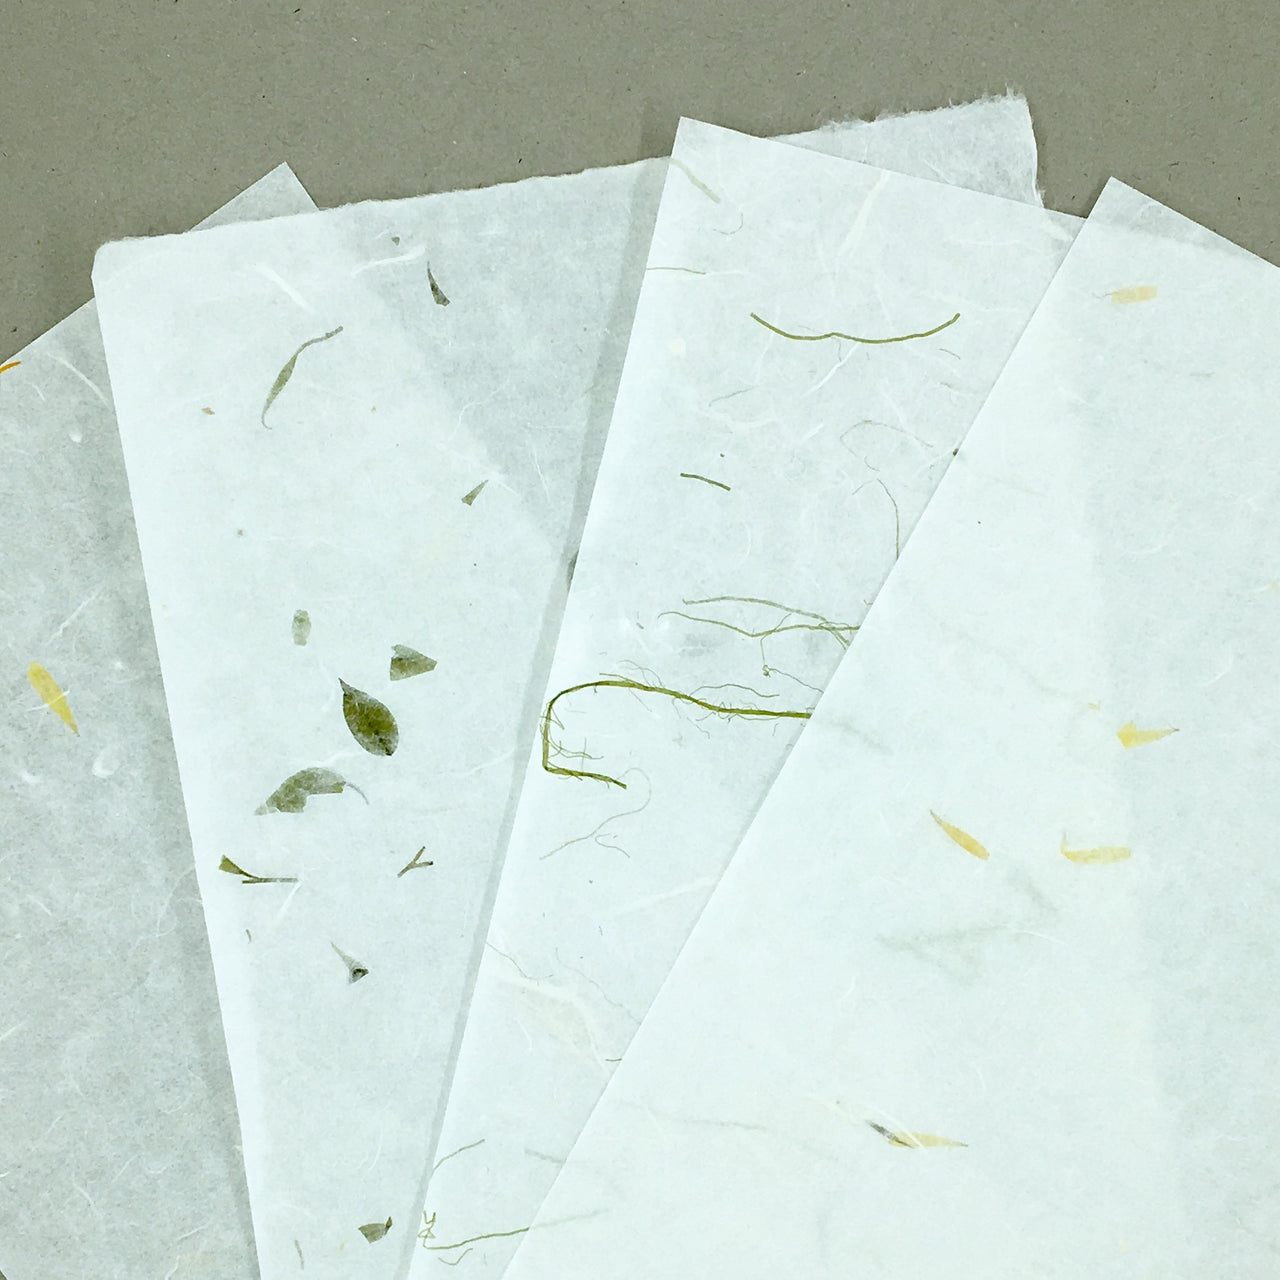 Natural Fiber Letter Paper Shown in various styles